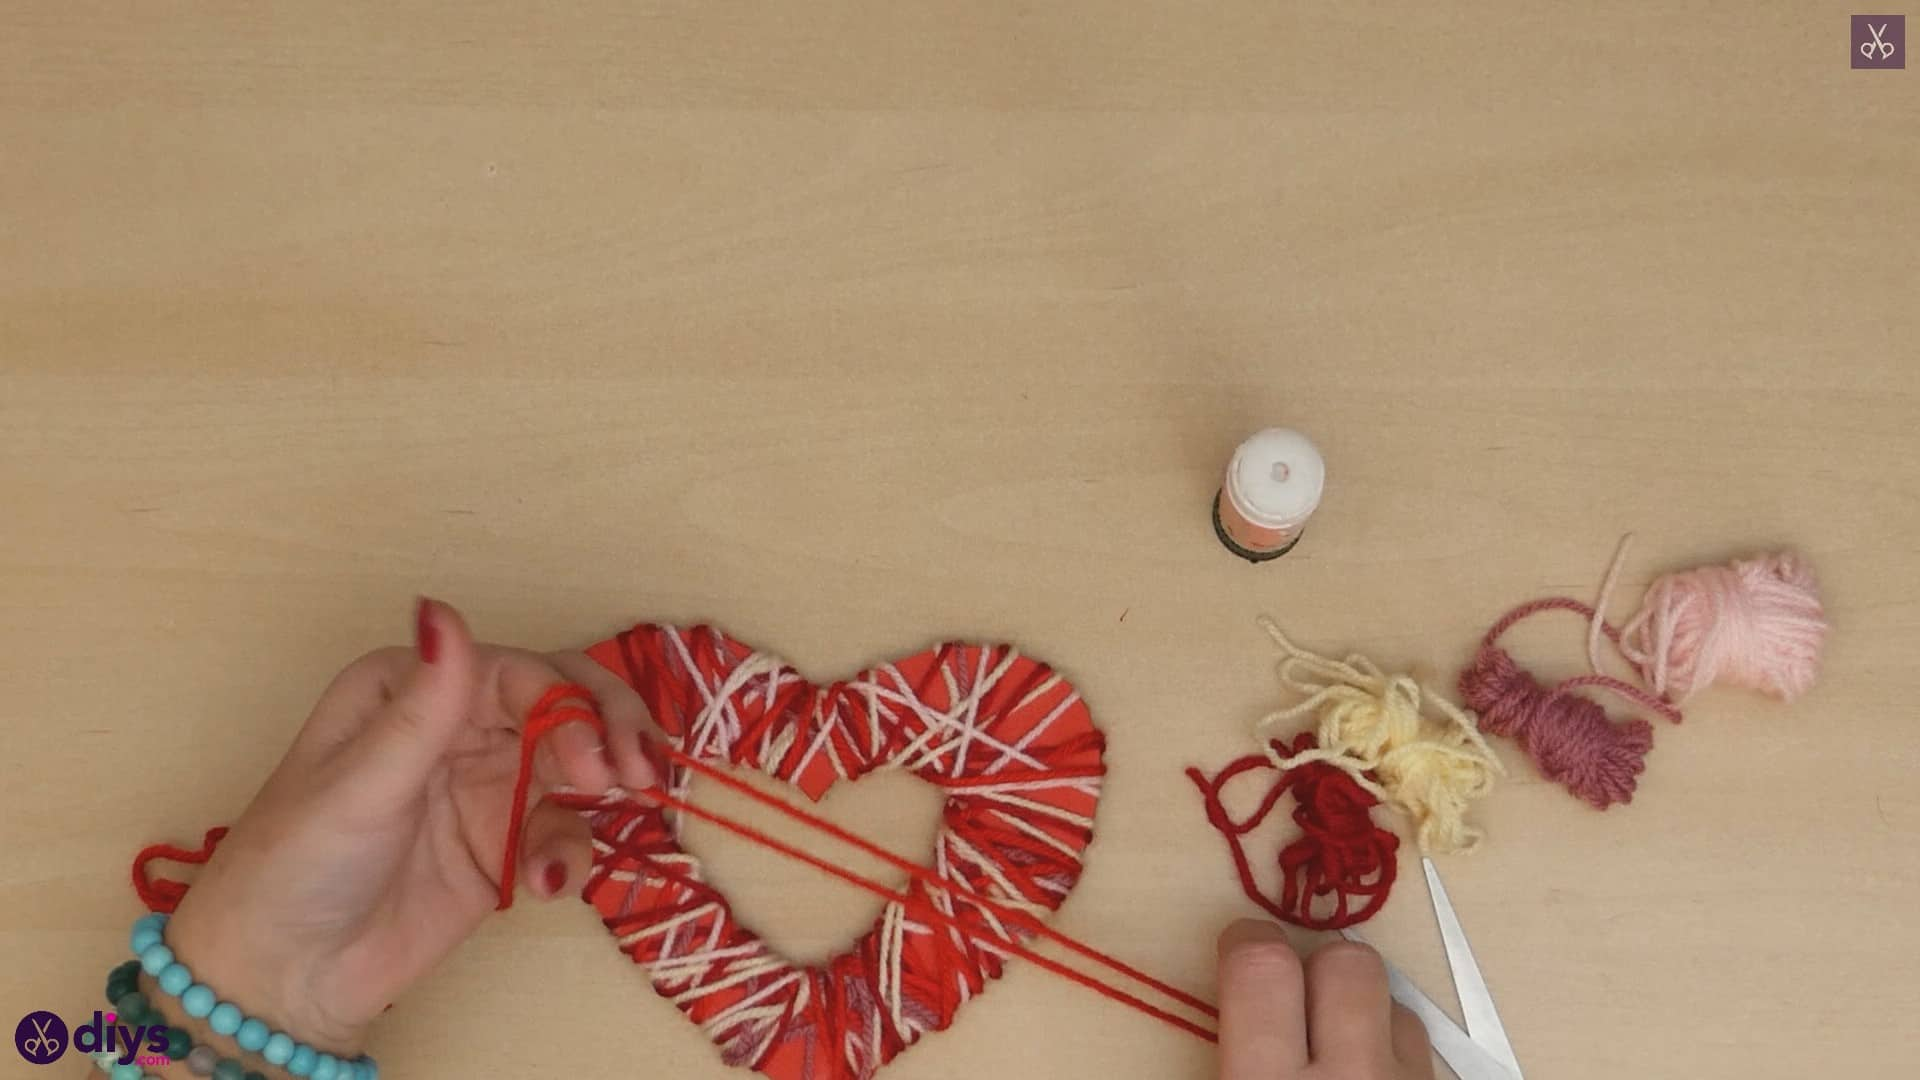 Diy yarn wrapped paper heart step 7a